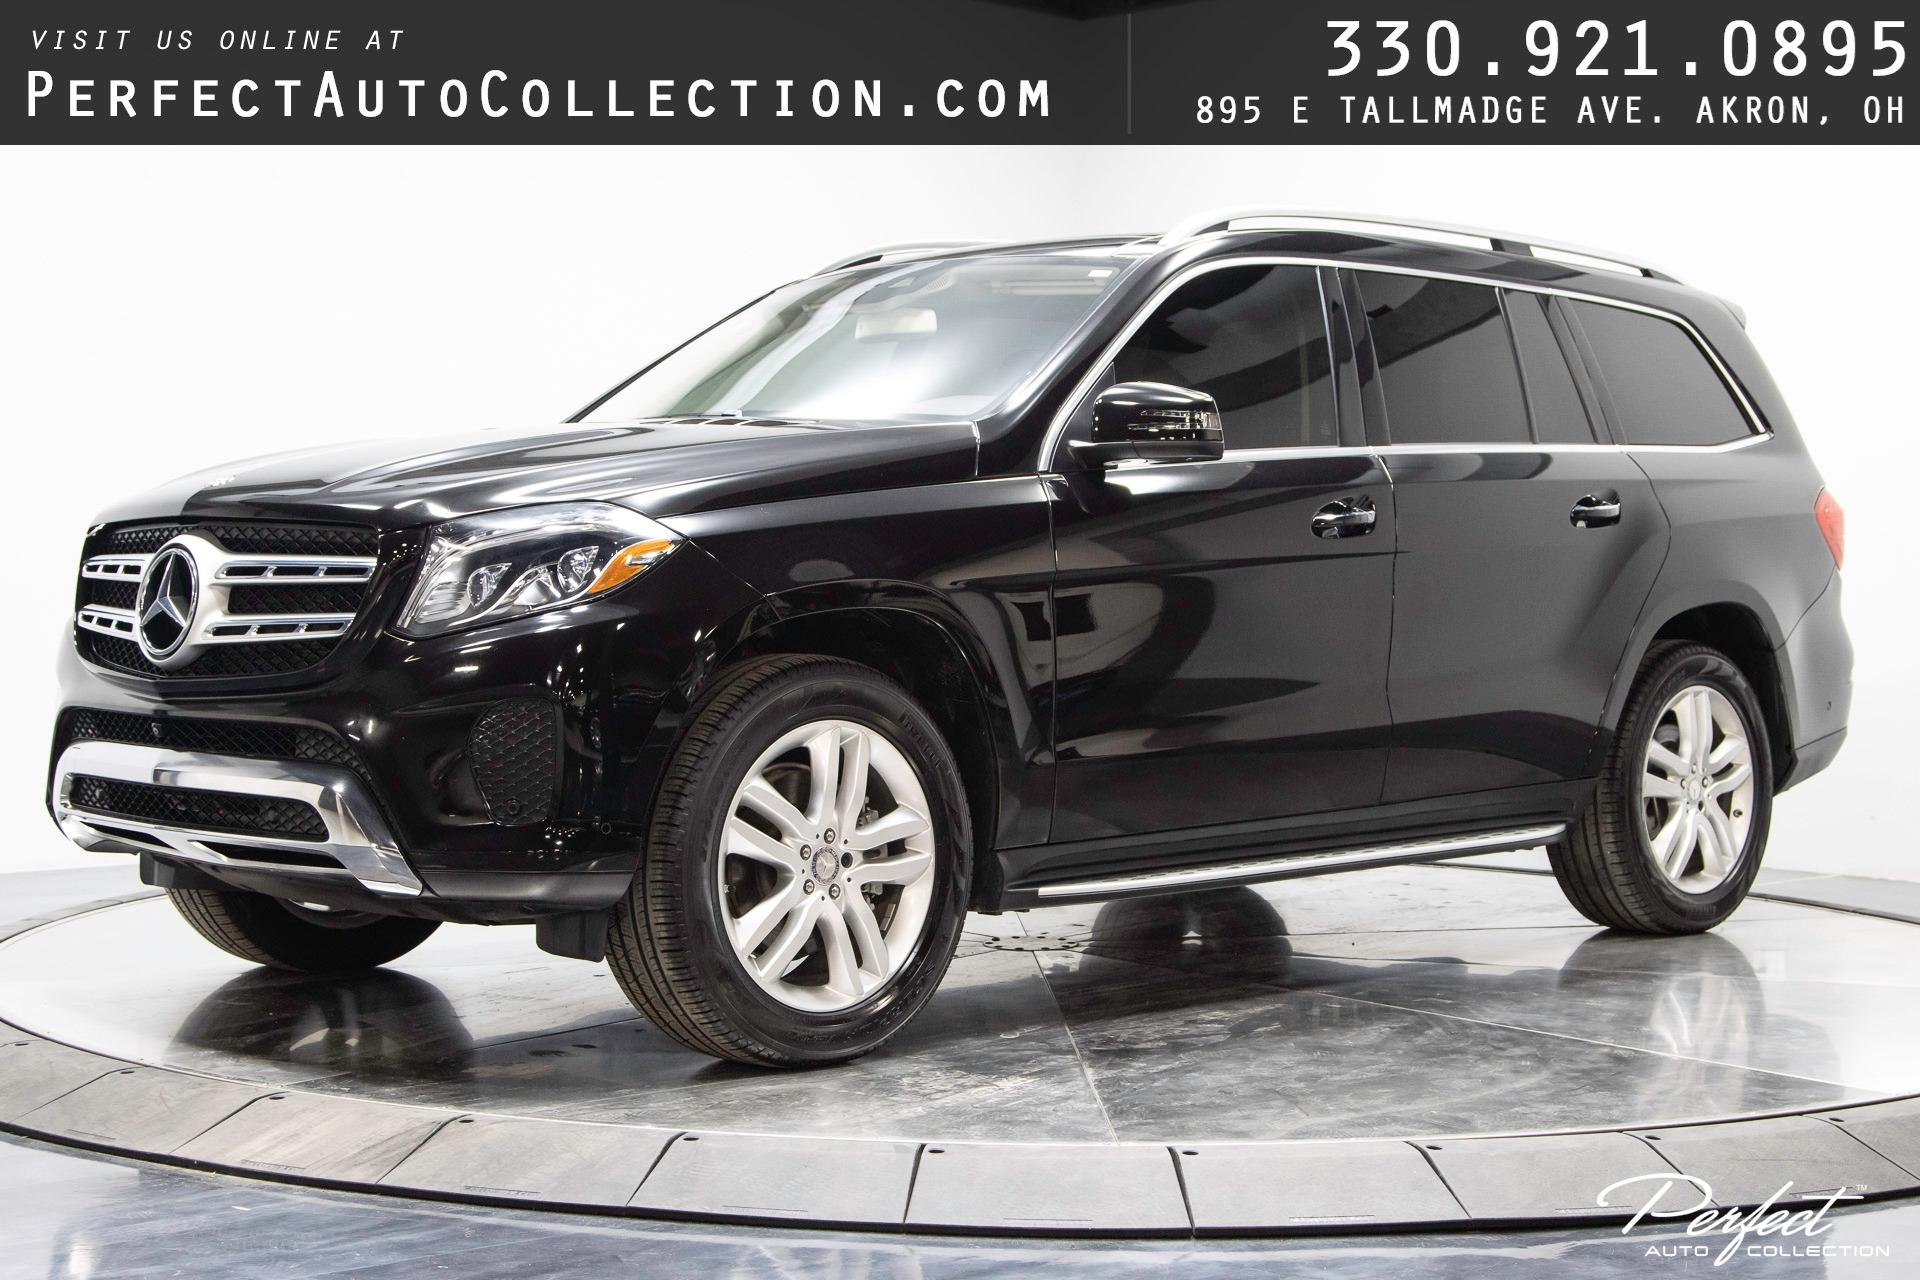 Used 2017 Mercedes-Benz GLS GLS 450 for sale $41,495 at Perfect Auto Collection in Akron OH 44310 1